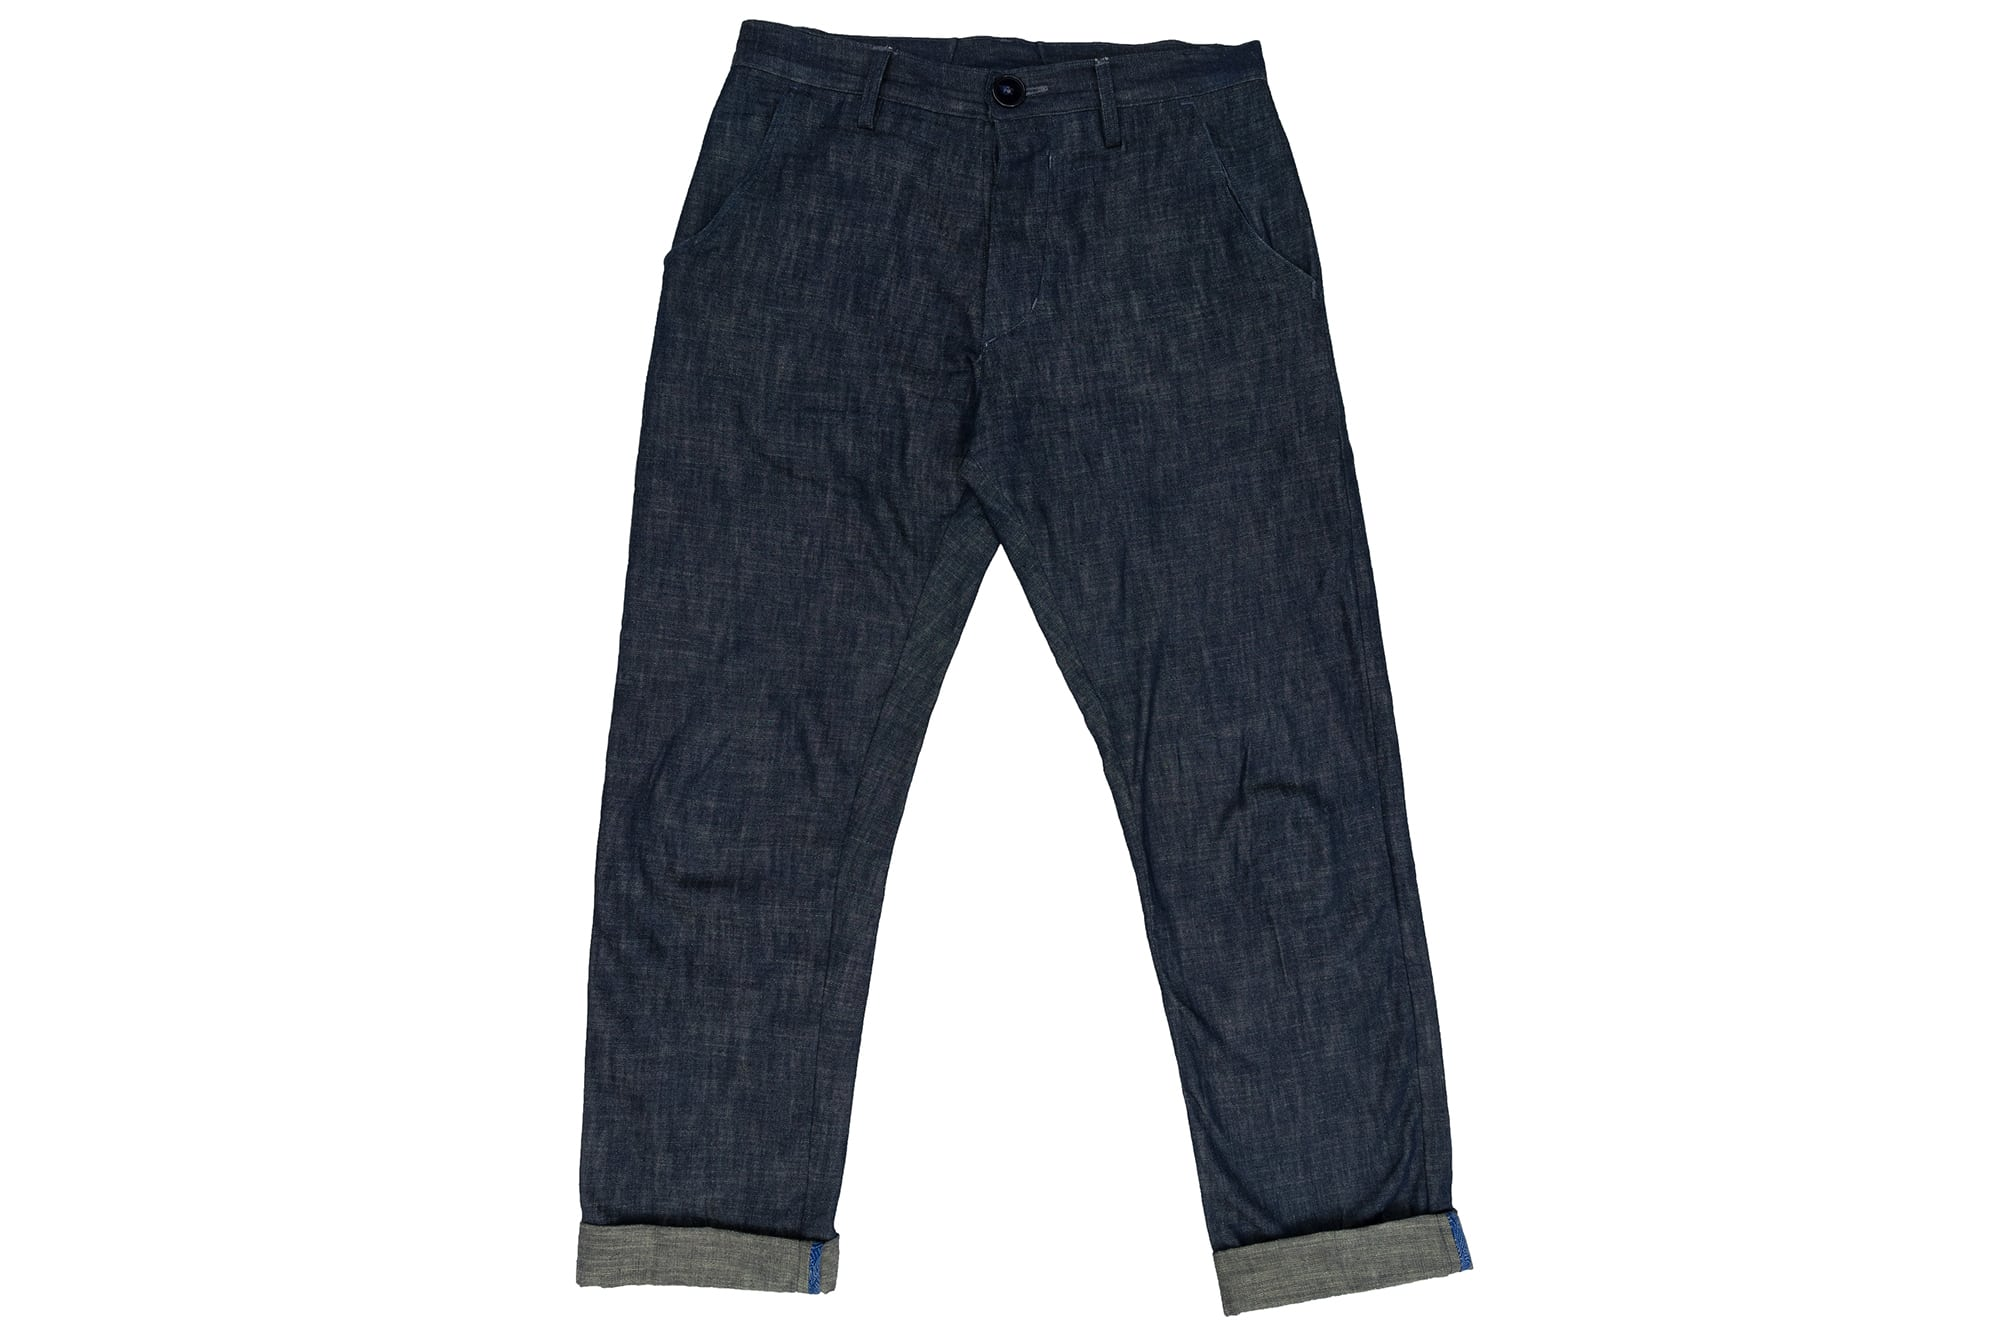 Pantallon léger en denim Japan Blue 8oz - couple droite / ample